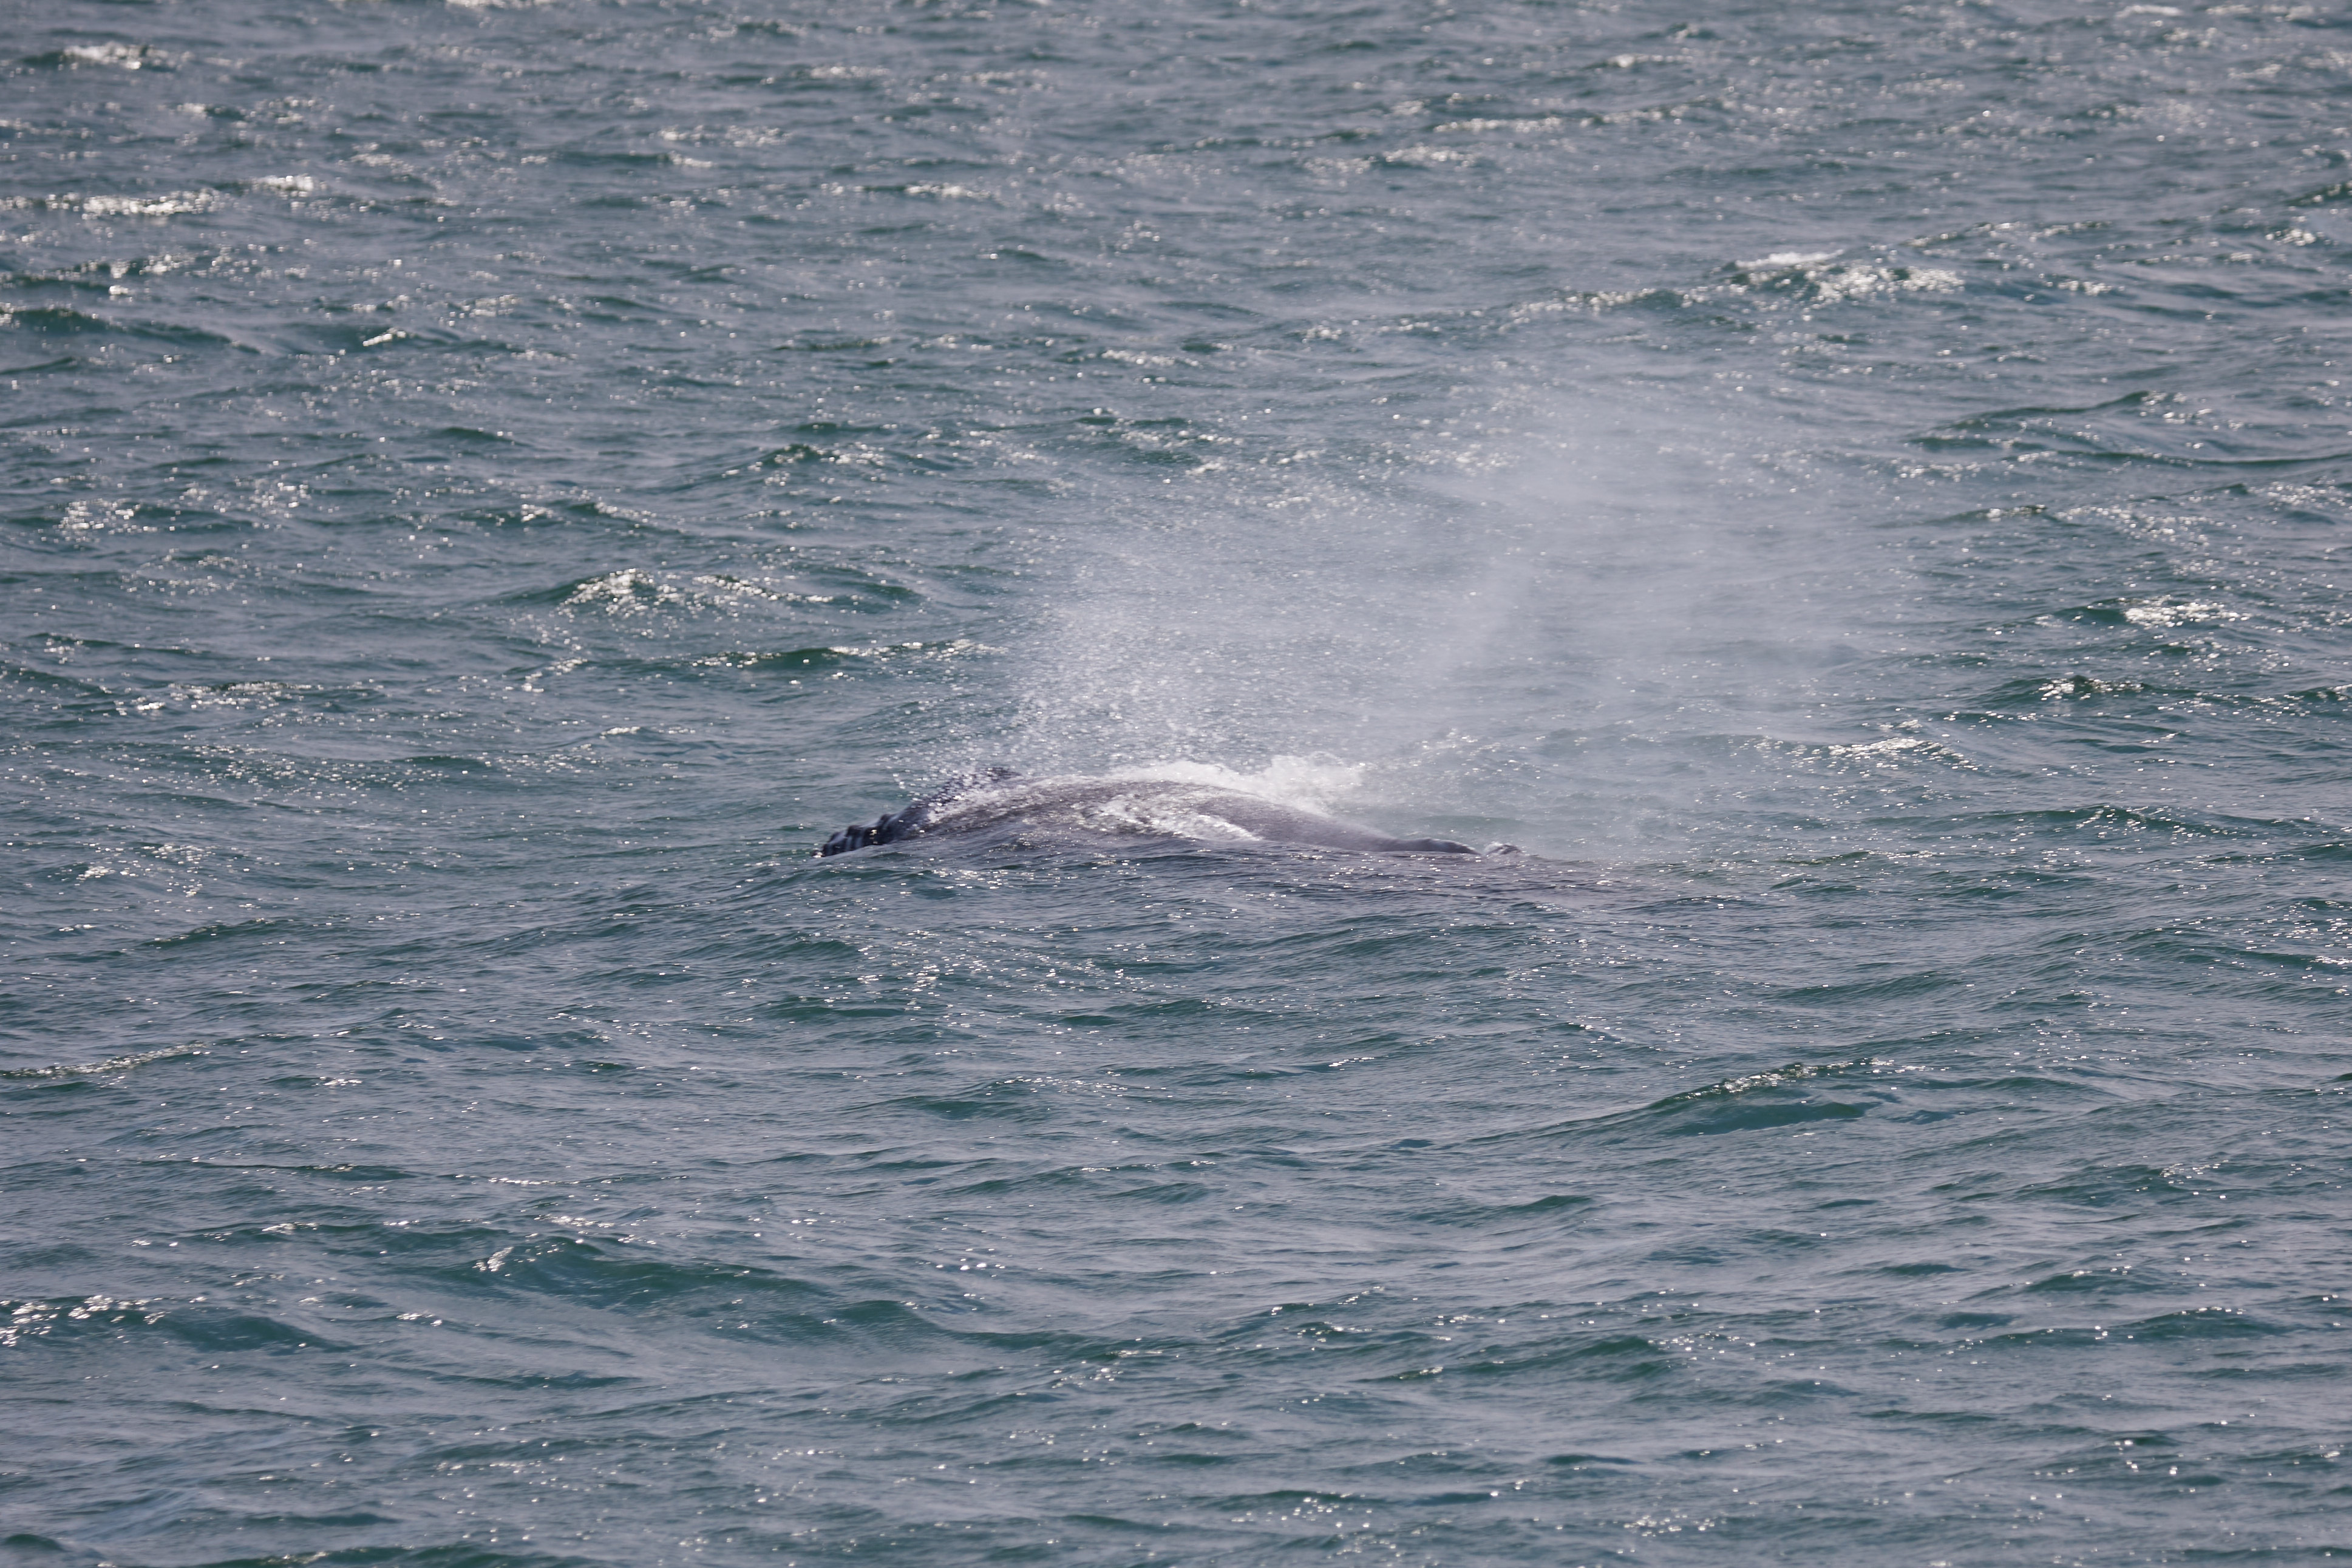 Whale spouting water.